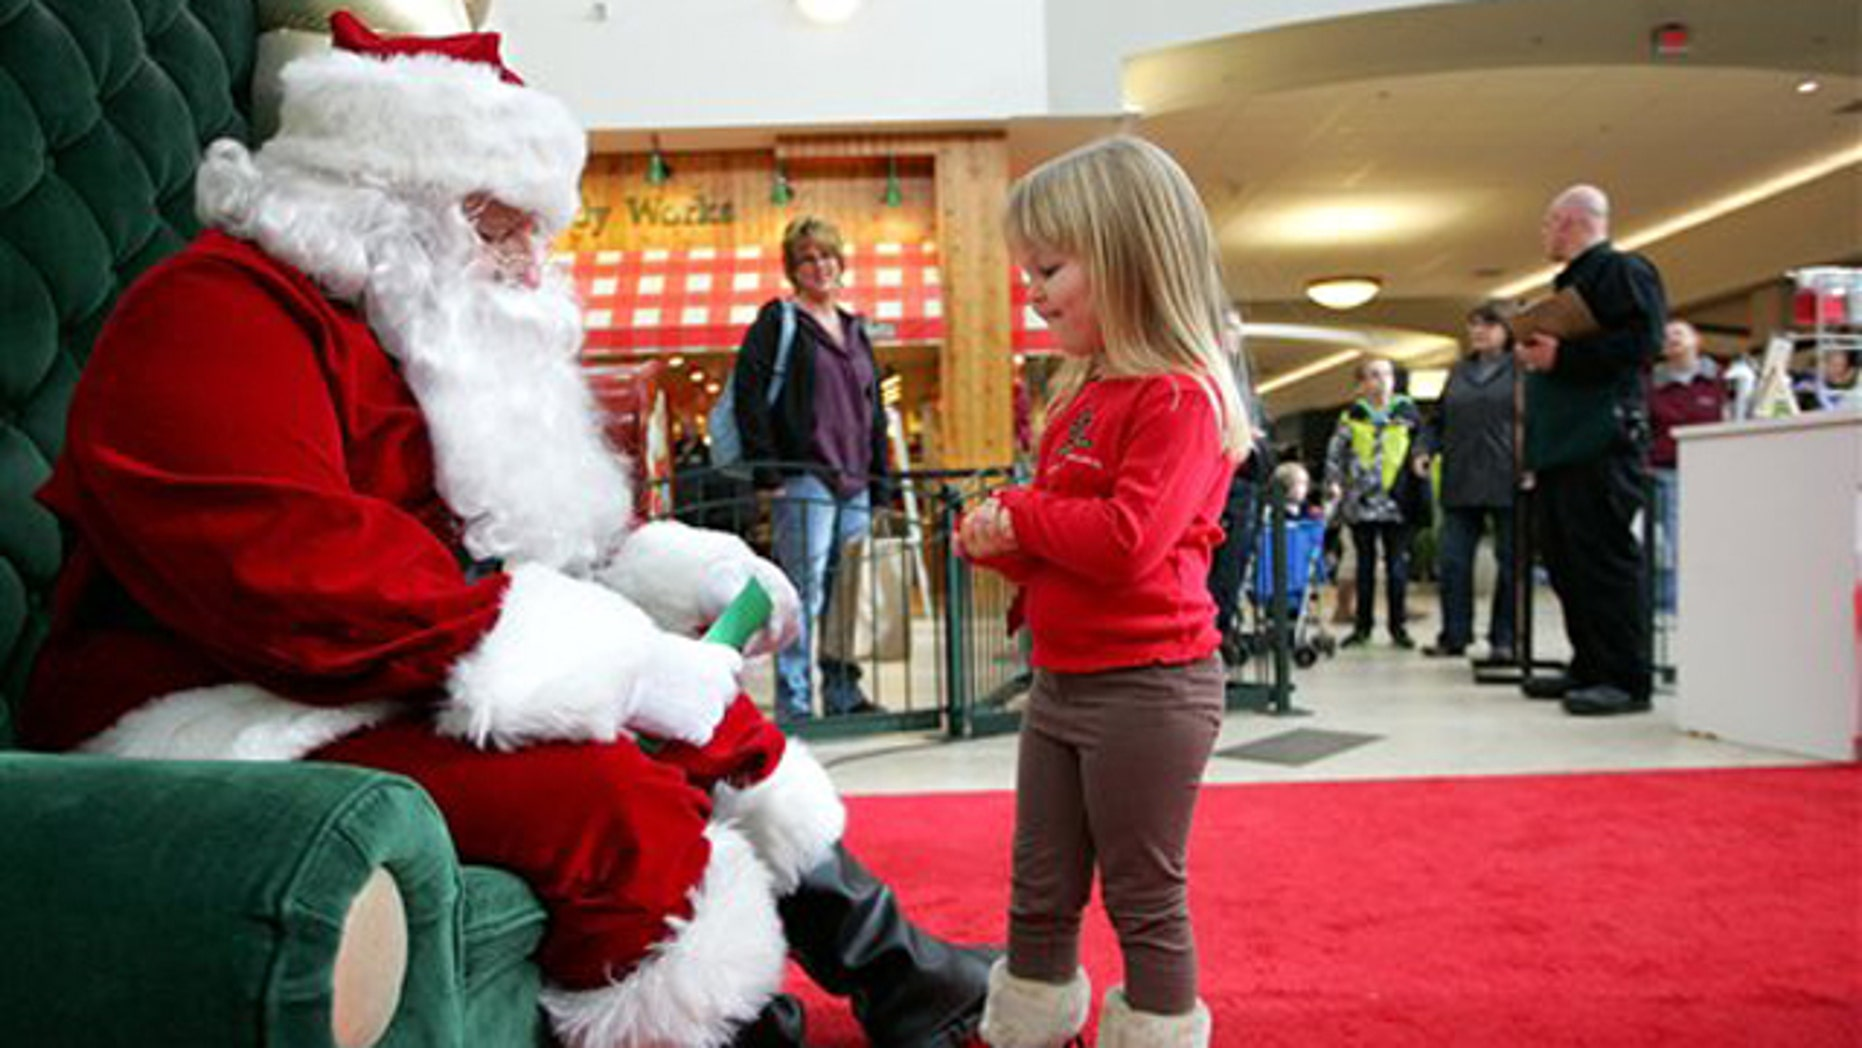 Dec. 23, 2010: Emma Schlichtmann, 3, of Potosi, Wis., tells Santa all the things she wants for Christmas while visiting him at a shopping mall in Dubuque, Iowa.